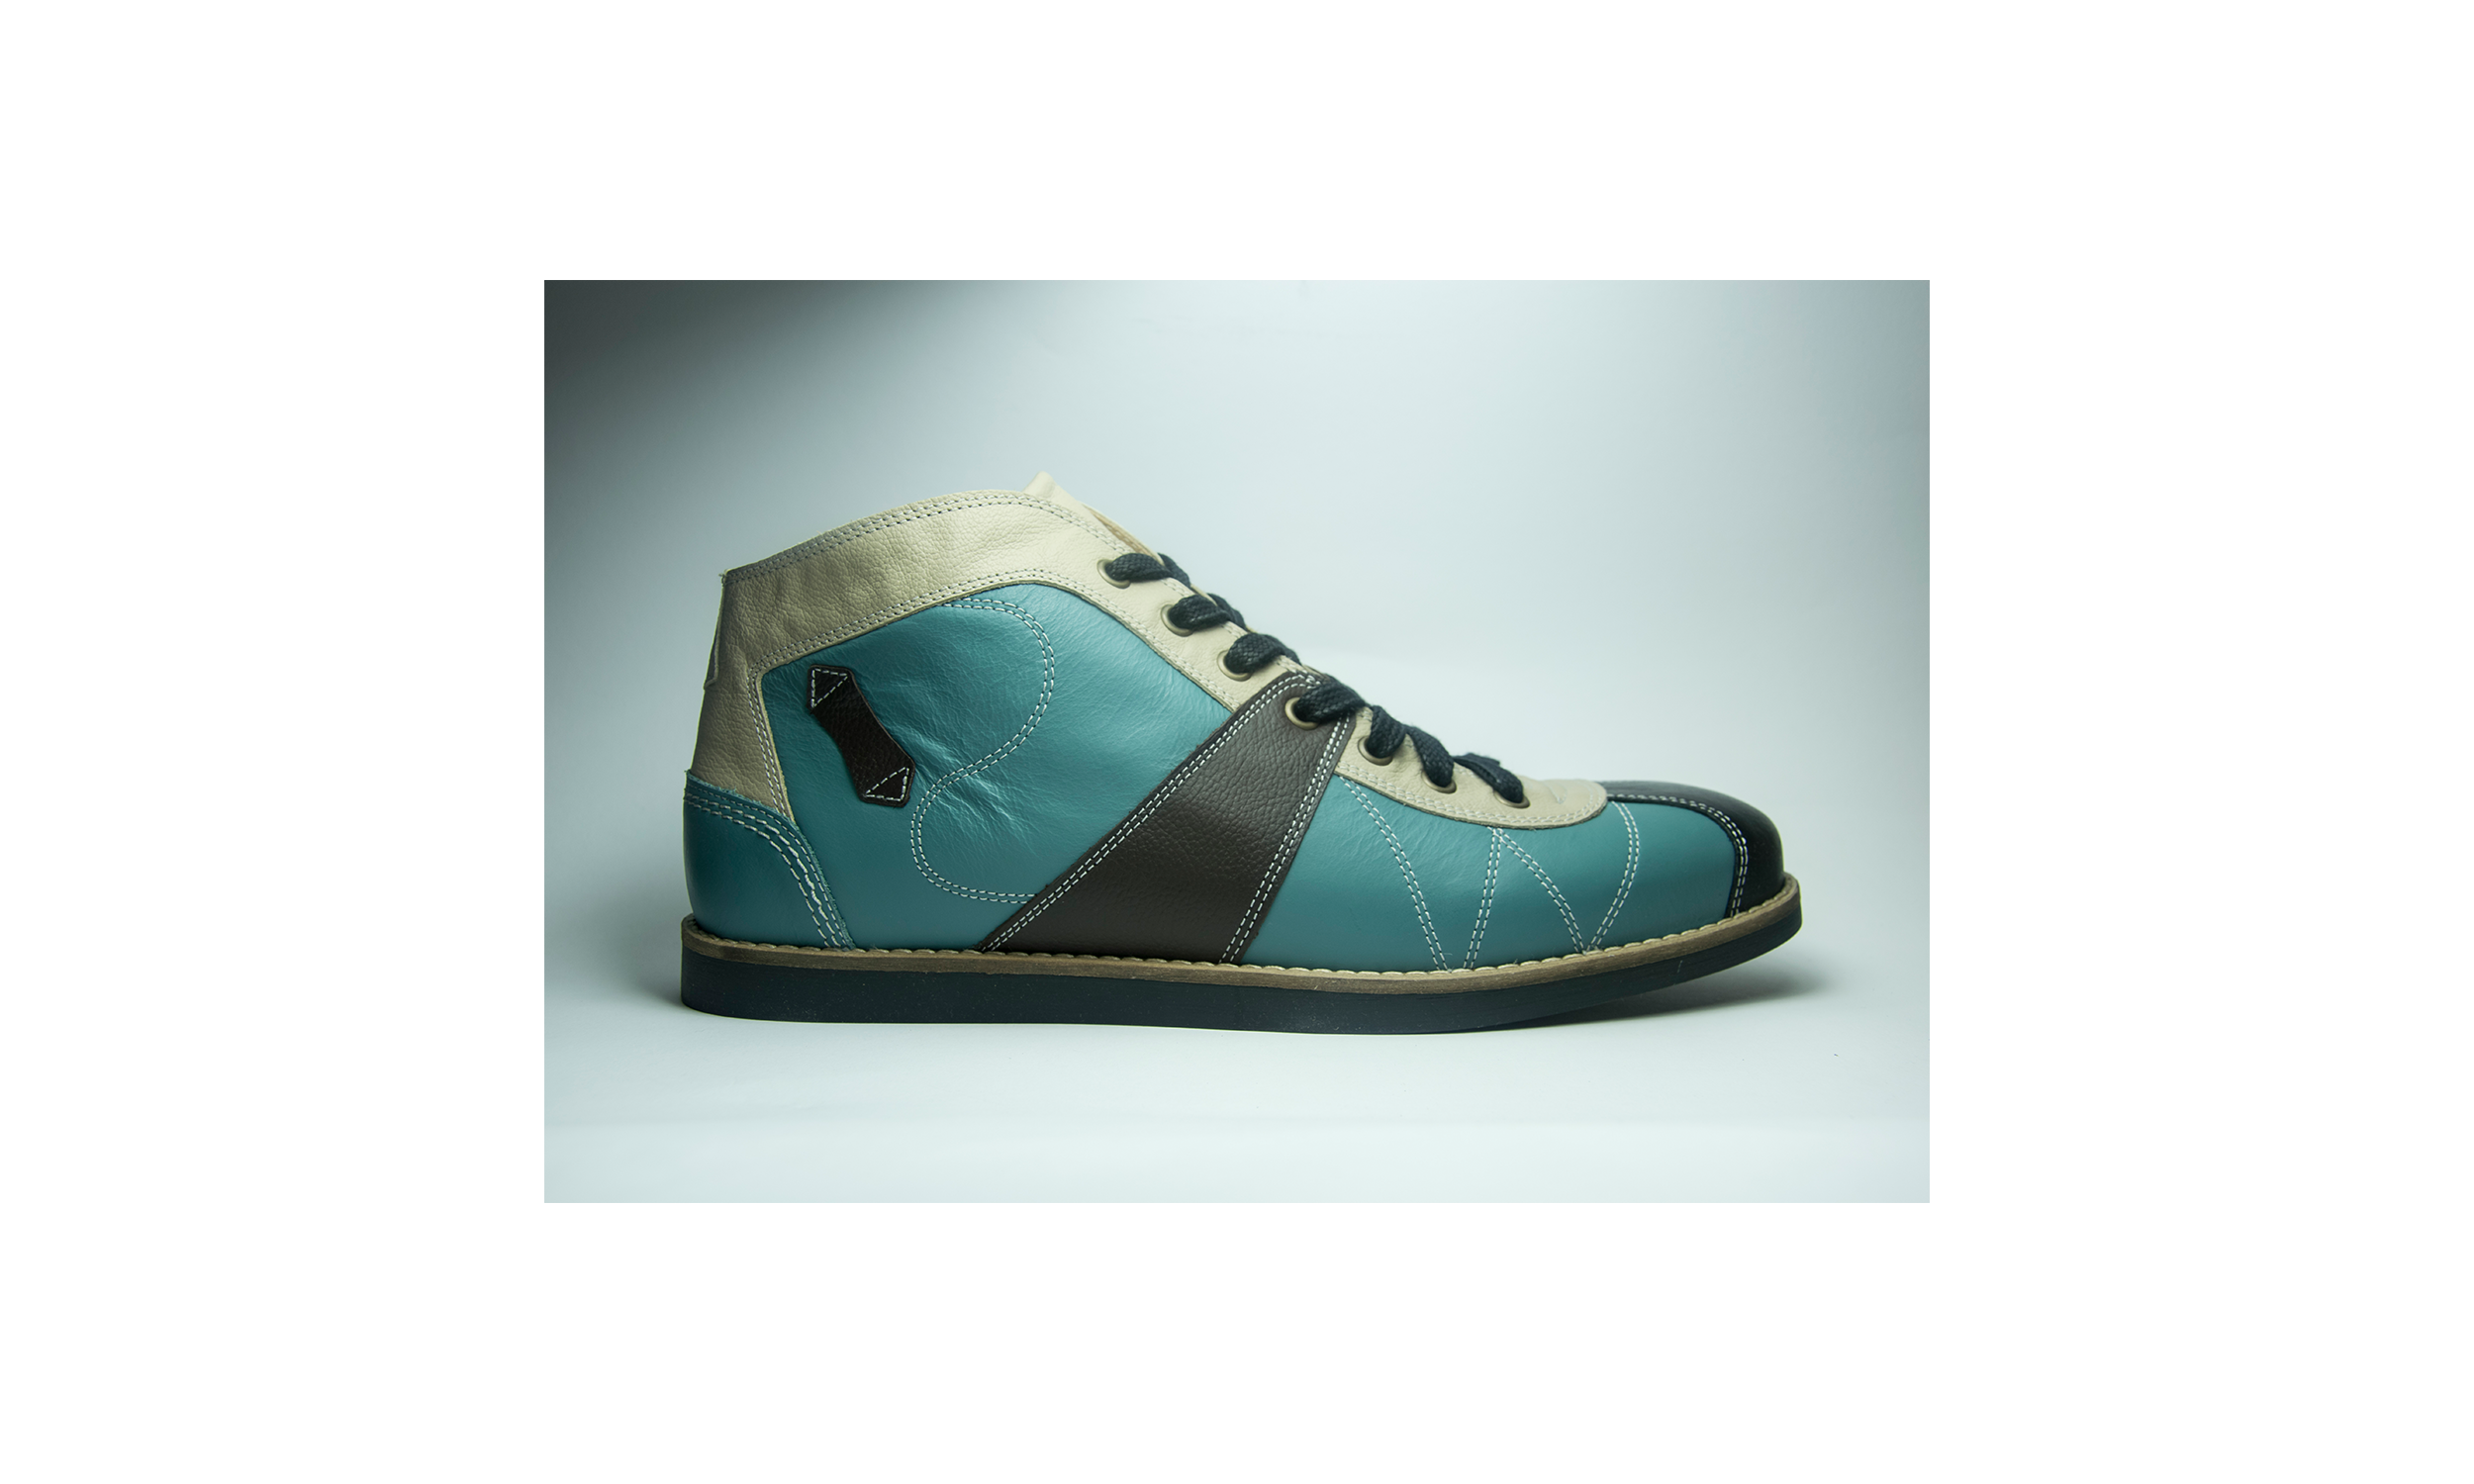 the Kicker lightblue/brown/cream